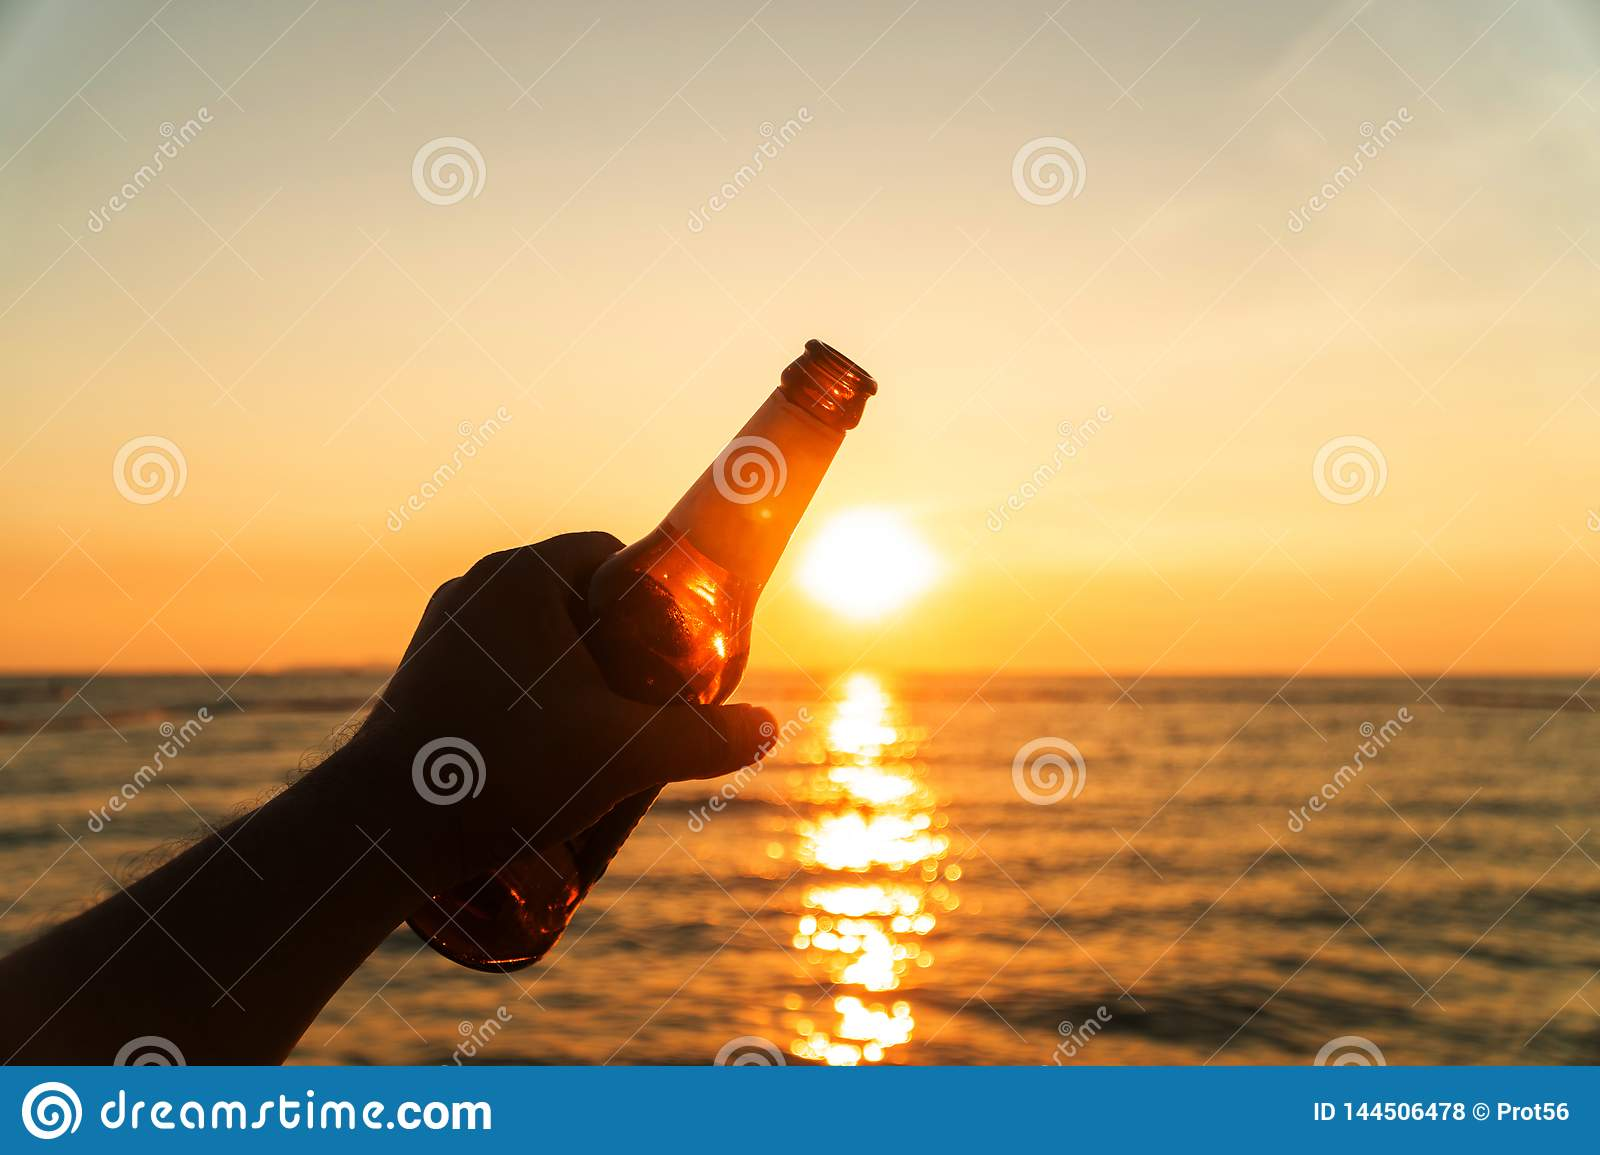 Hand of man is holding beer bottle and holds his hand up on the sky in evening with sunset. celebrating on holiday at the beach in